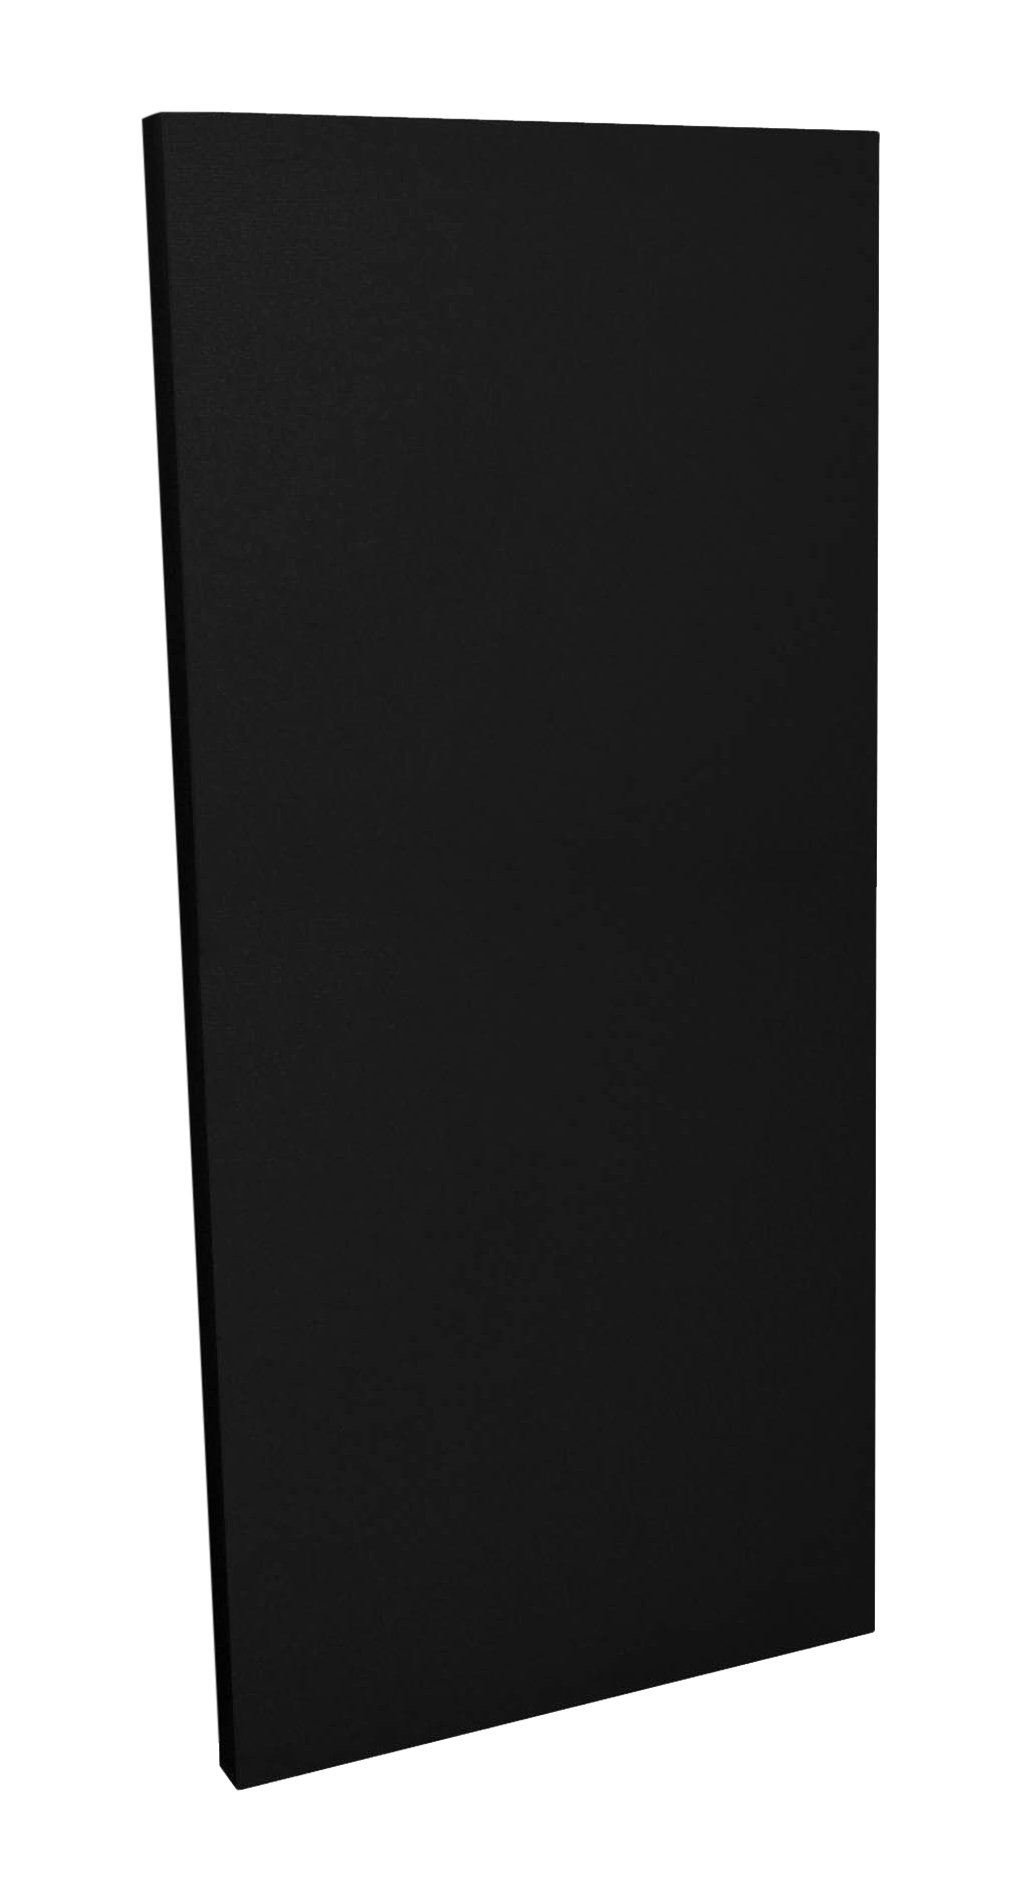 GeerFab Acoustics RoomZorbers PZ48BLACK1 ProZorber 24x48 1'' Thick Single Acoustical Treatment Panel, Black by GeerFab Acoustics (Image #1)